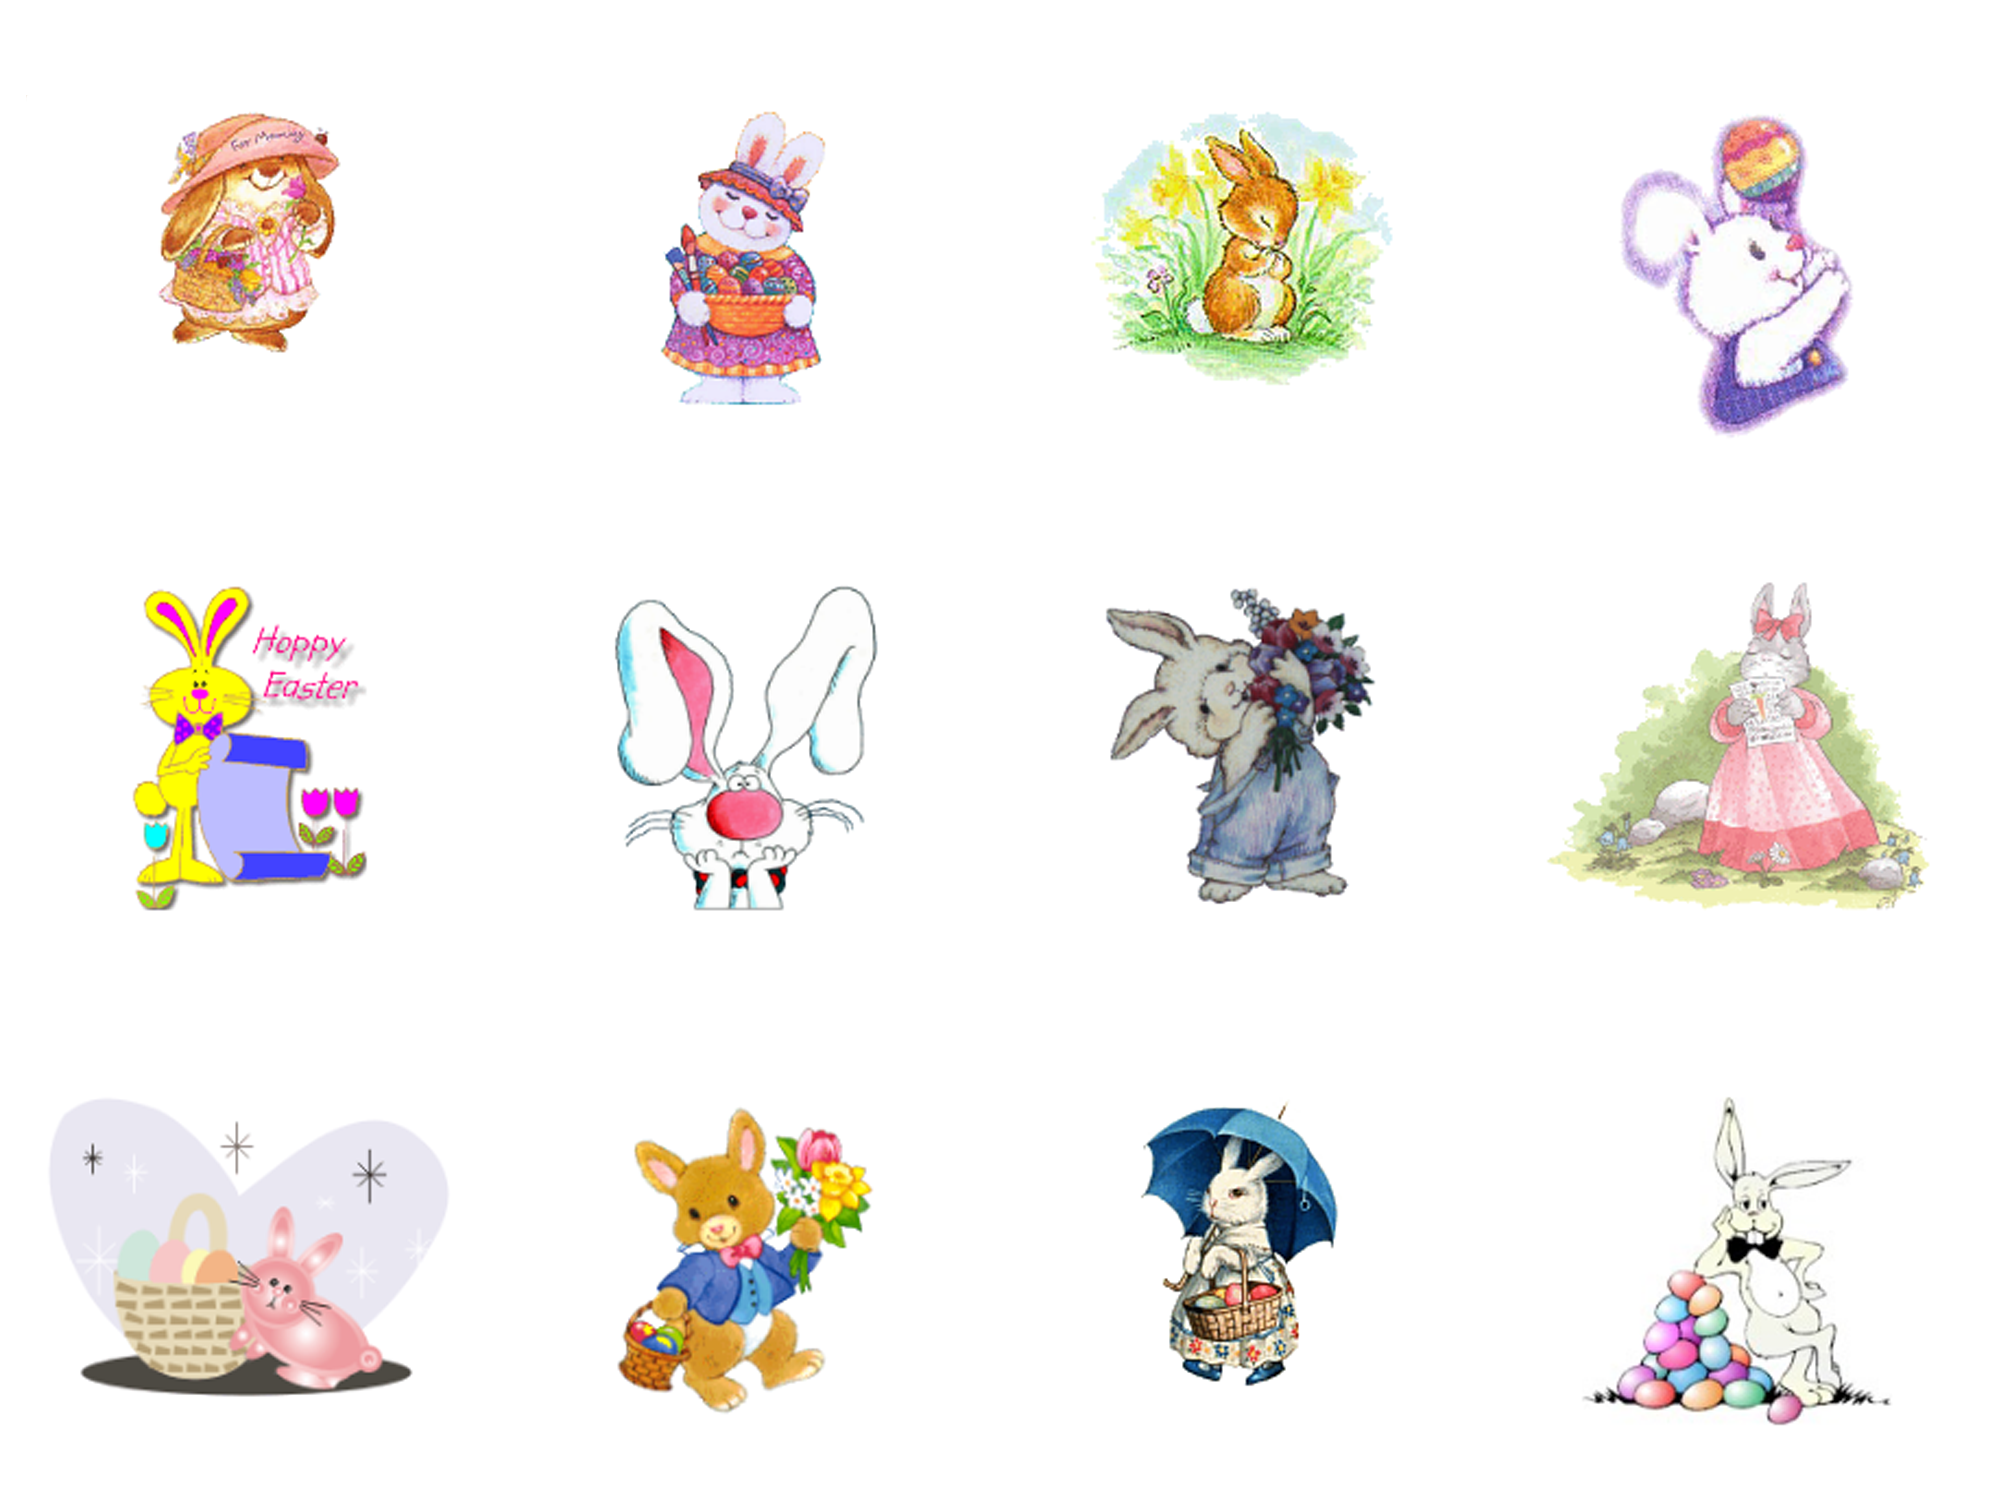 Several clip art images of Easter bunnies